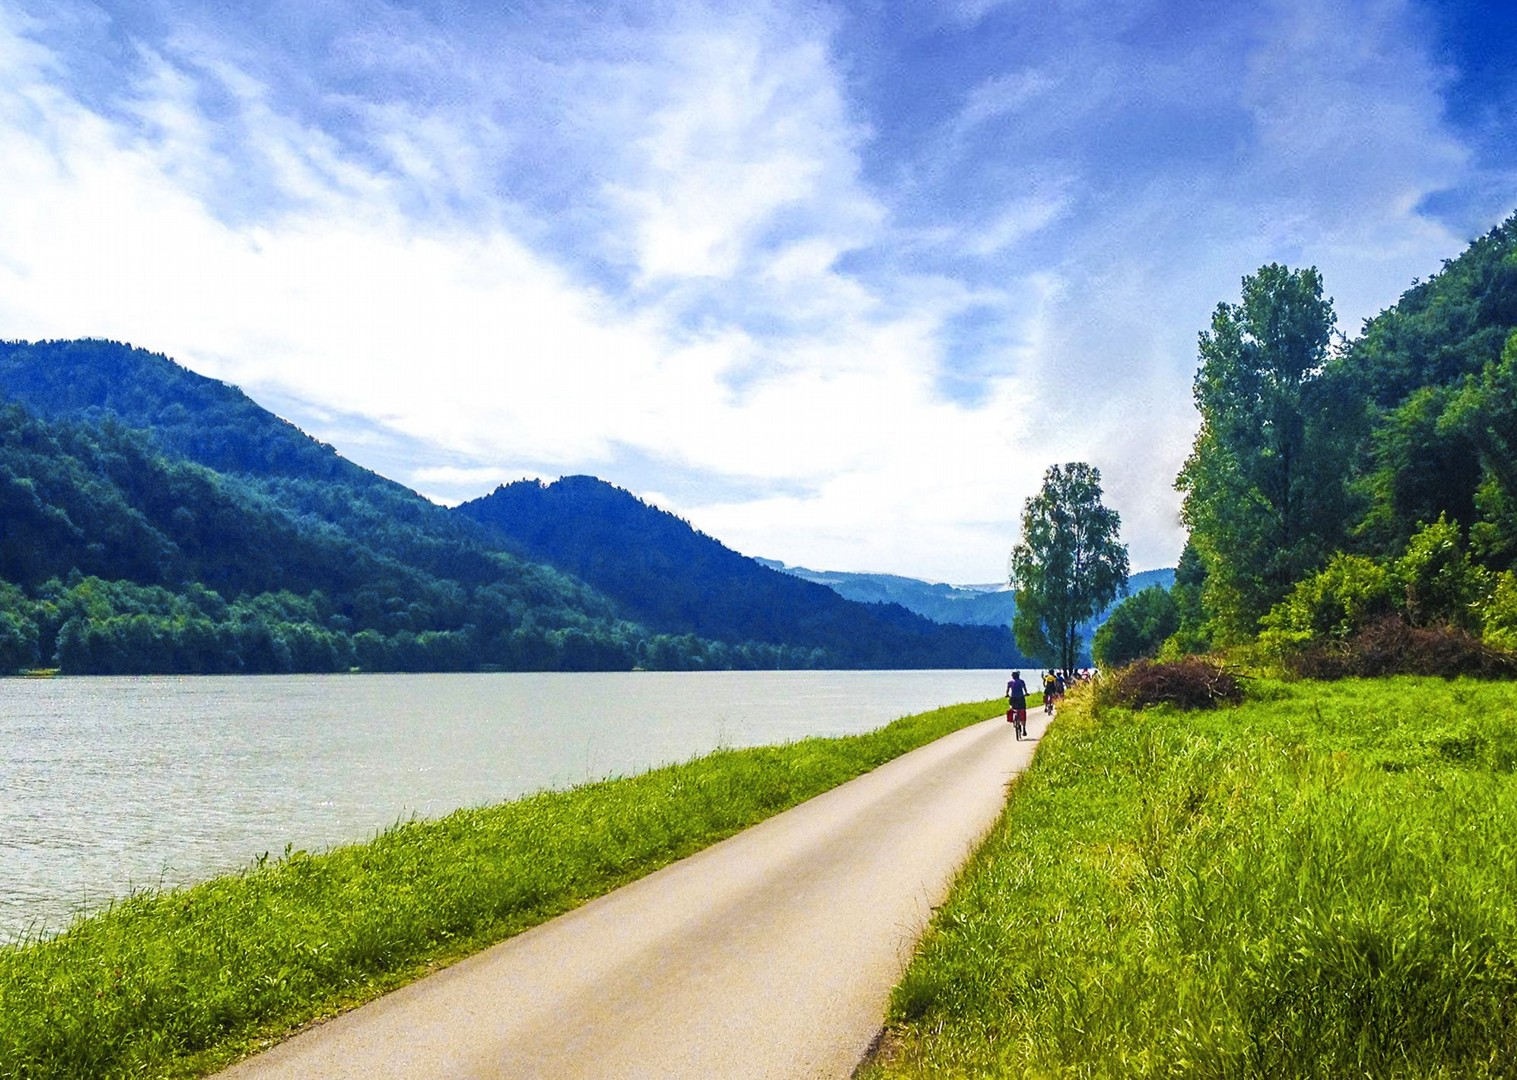 danube-river-cycling-holiday-self-guided-leisure-fun-easy.jpg - Germany and Austria - The Danube Cyclepath (8 Days) - Self-Guided Leisure Cycling Holiday - Leisure Cycling